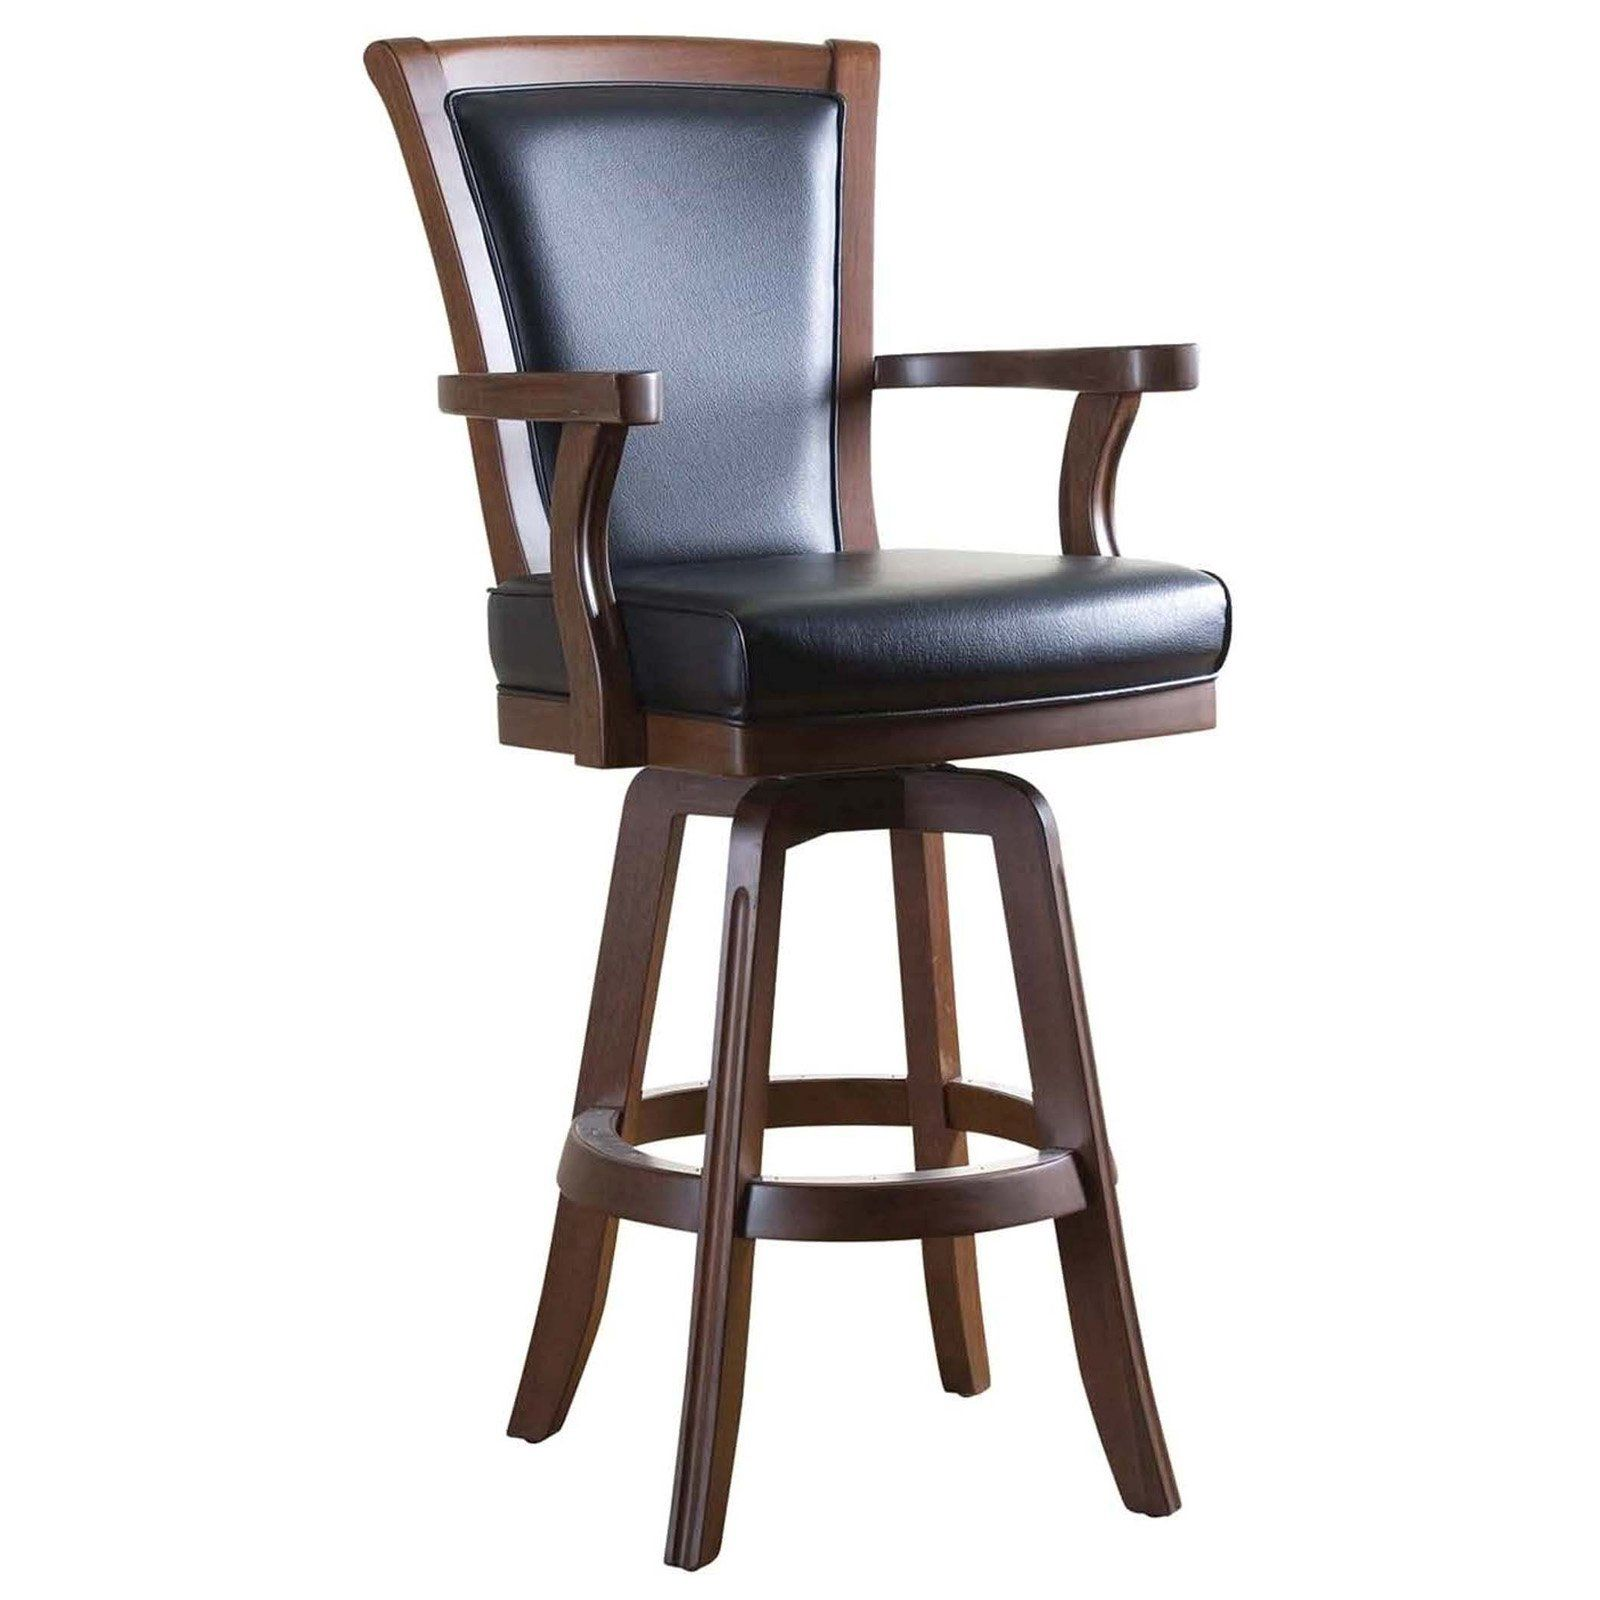 Ahb Auburn 30 In Swivel Bar Stool With Arms The Handsome Combination Of Wood And Leather Comes Togethe Wooden Swivel Bar Stools Bar Stools Swivel Bar Stools